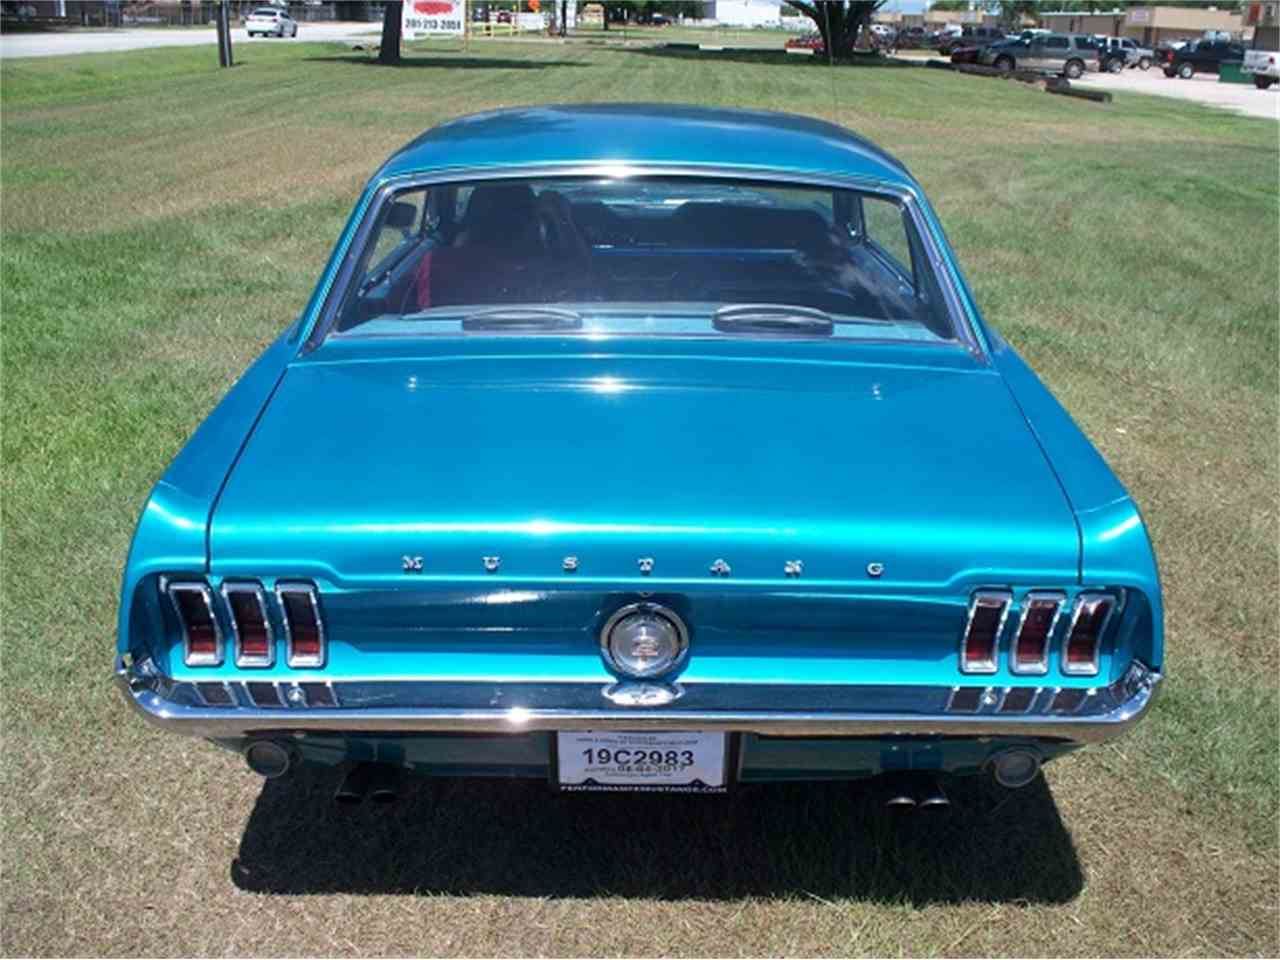 Large Picture of 1967 Mustang located in CYPRESS Texas - LFW3